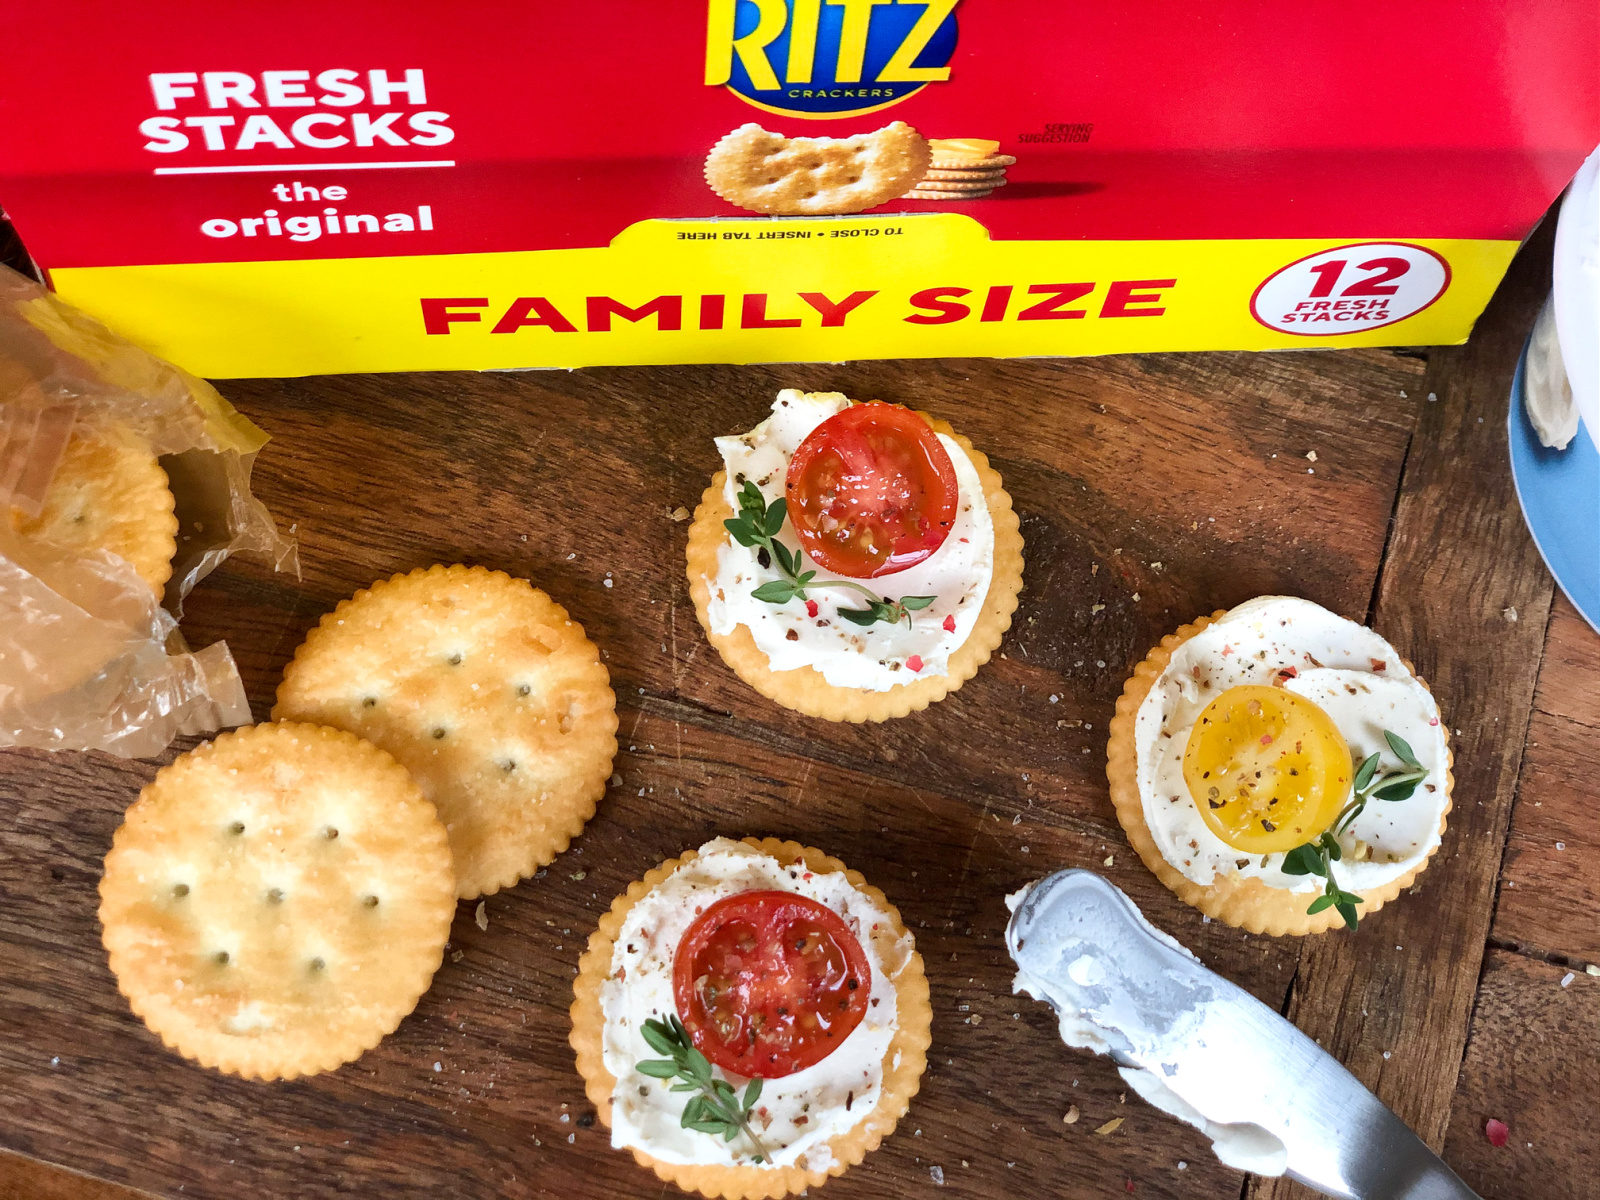 Nabisco Family Size Crackers As Low As $1.35 At Publix on I Heart Publix